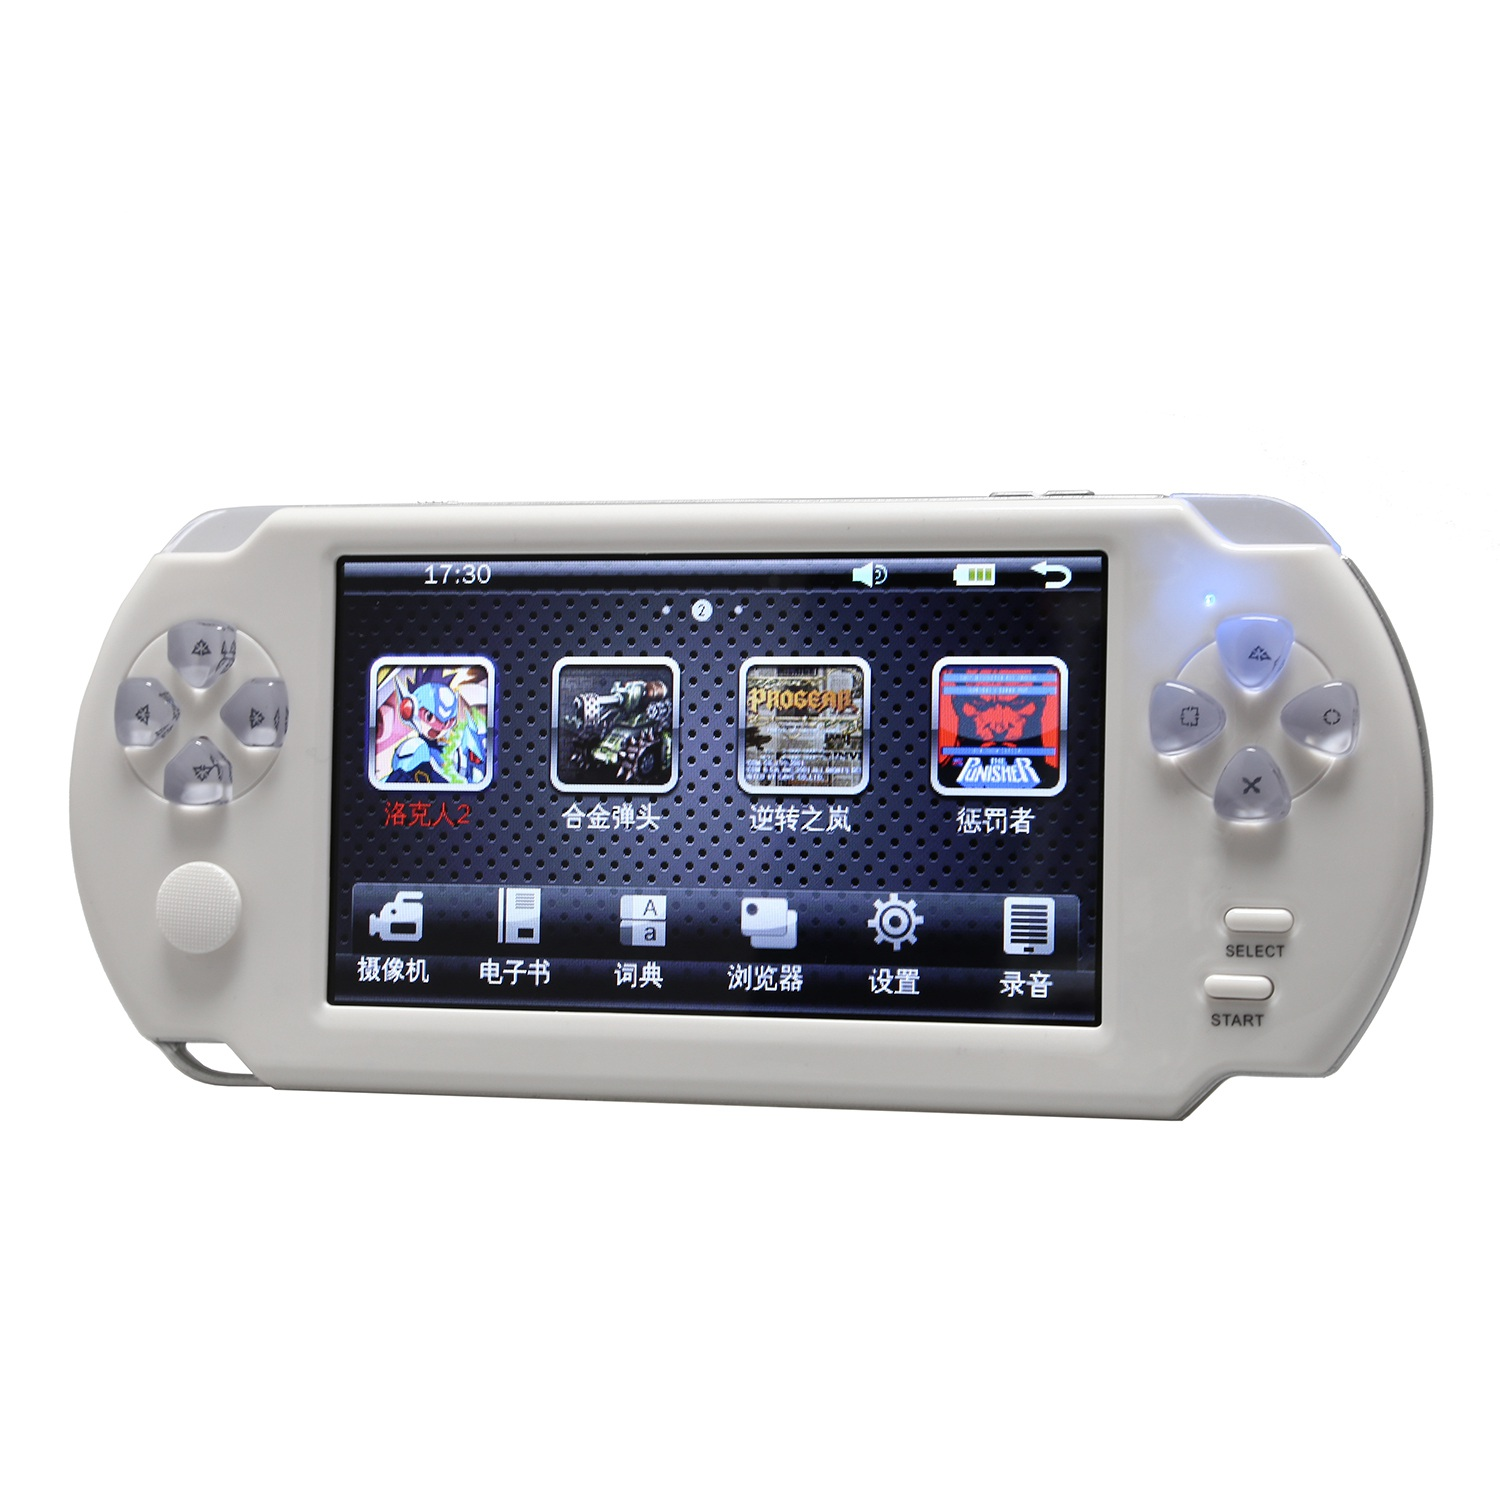 Powkiddy 5.1 Inch Retro Game Console Joystick Handheld Game Player Family TV Retro Video Consoles With Photo Recording MP3 Vid